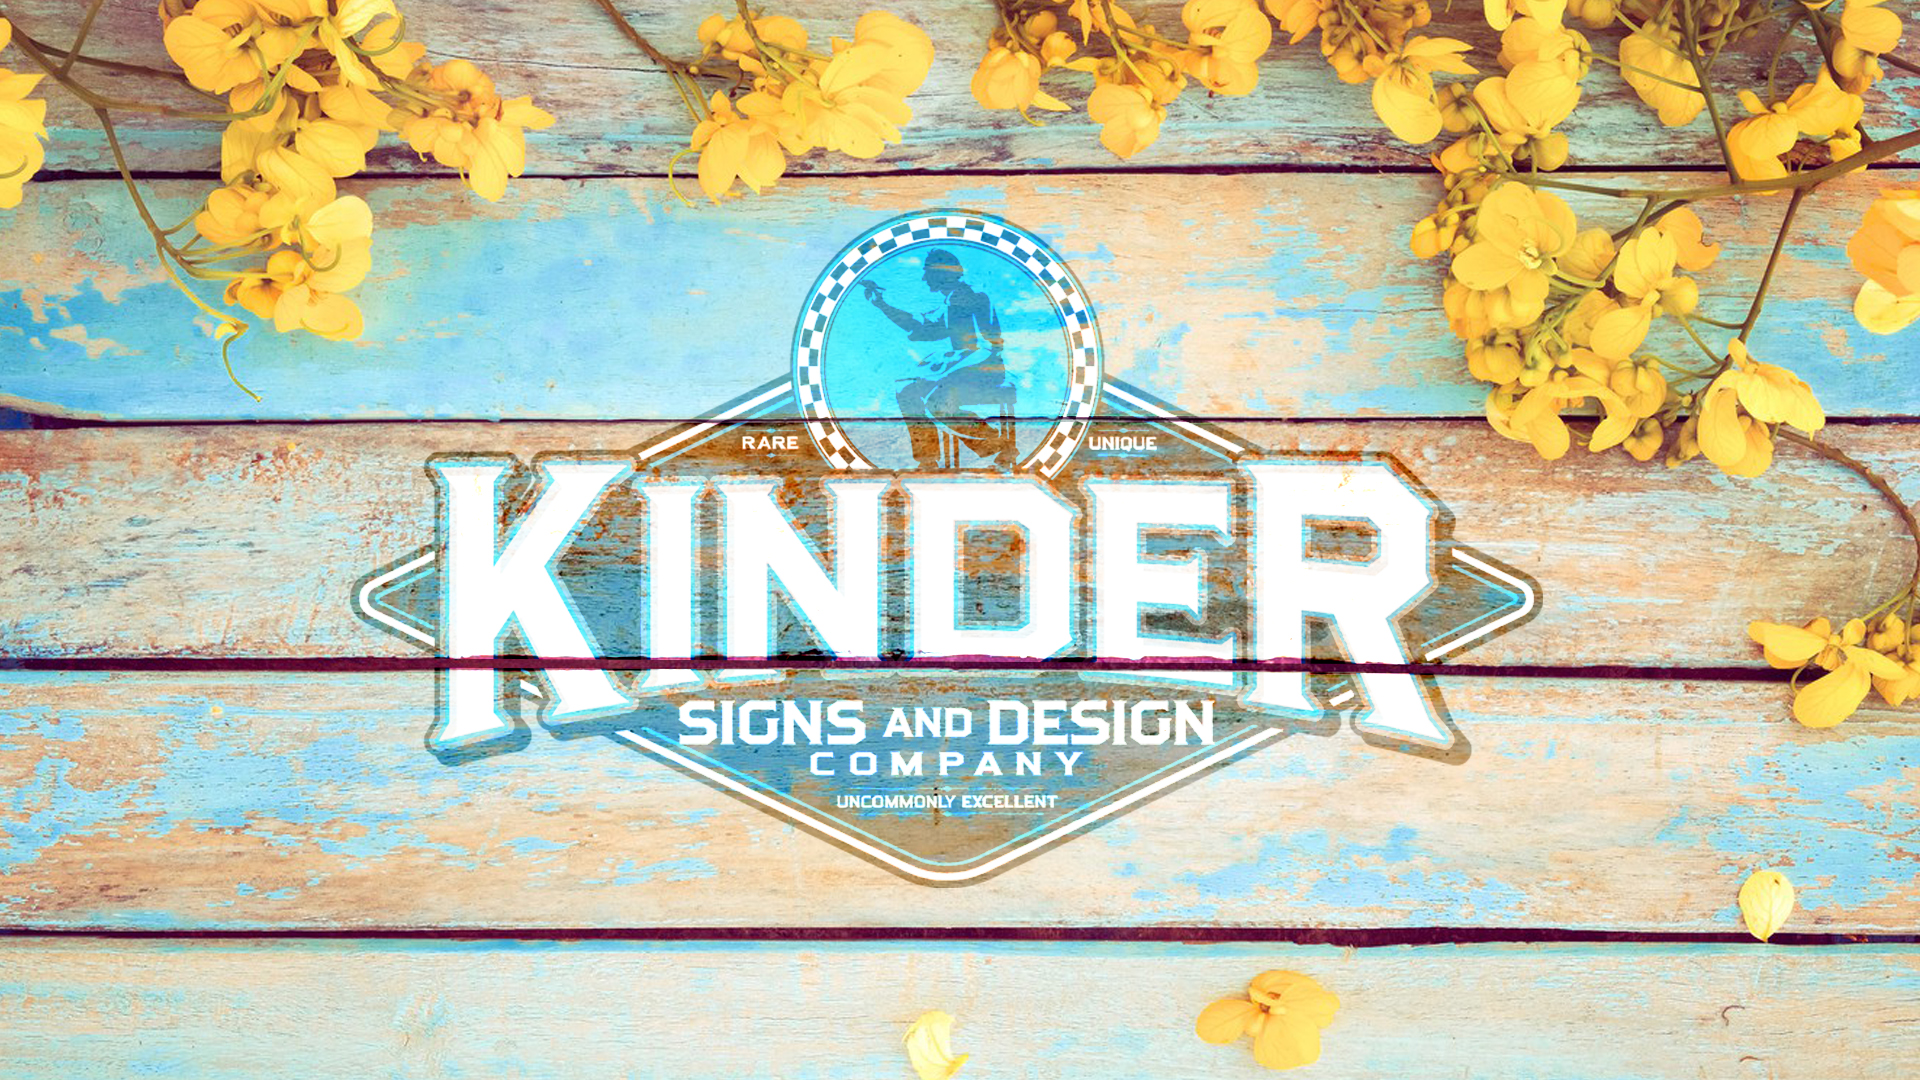 kinder signs and design company